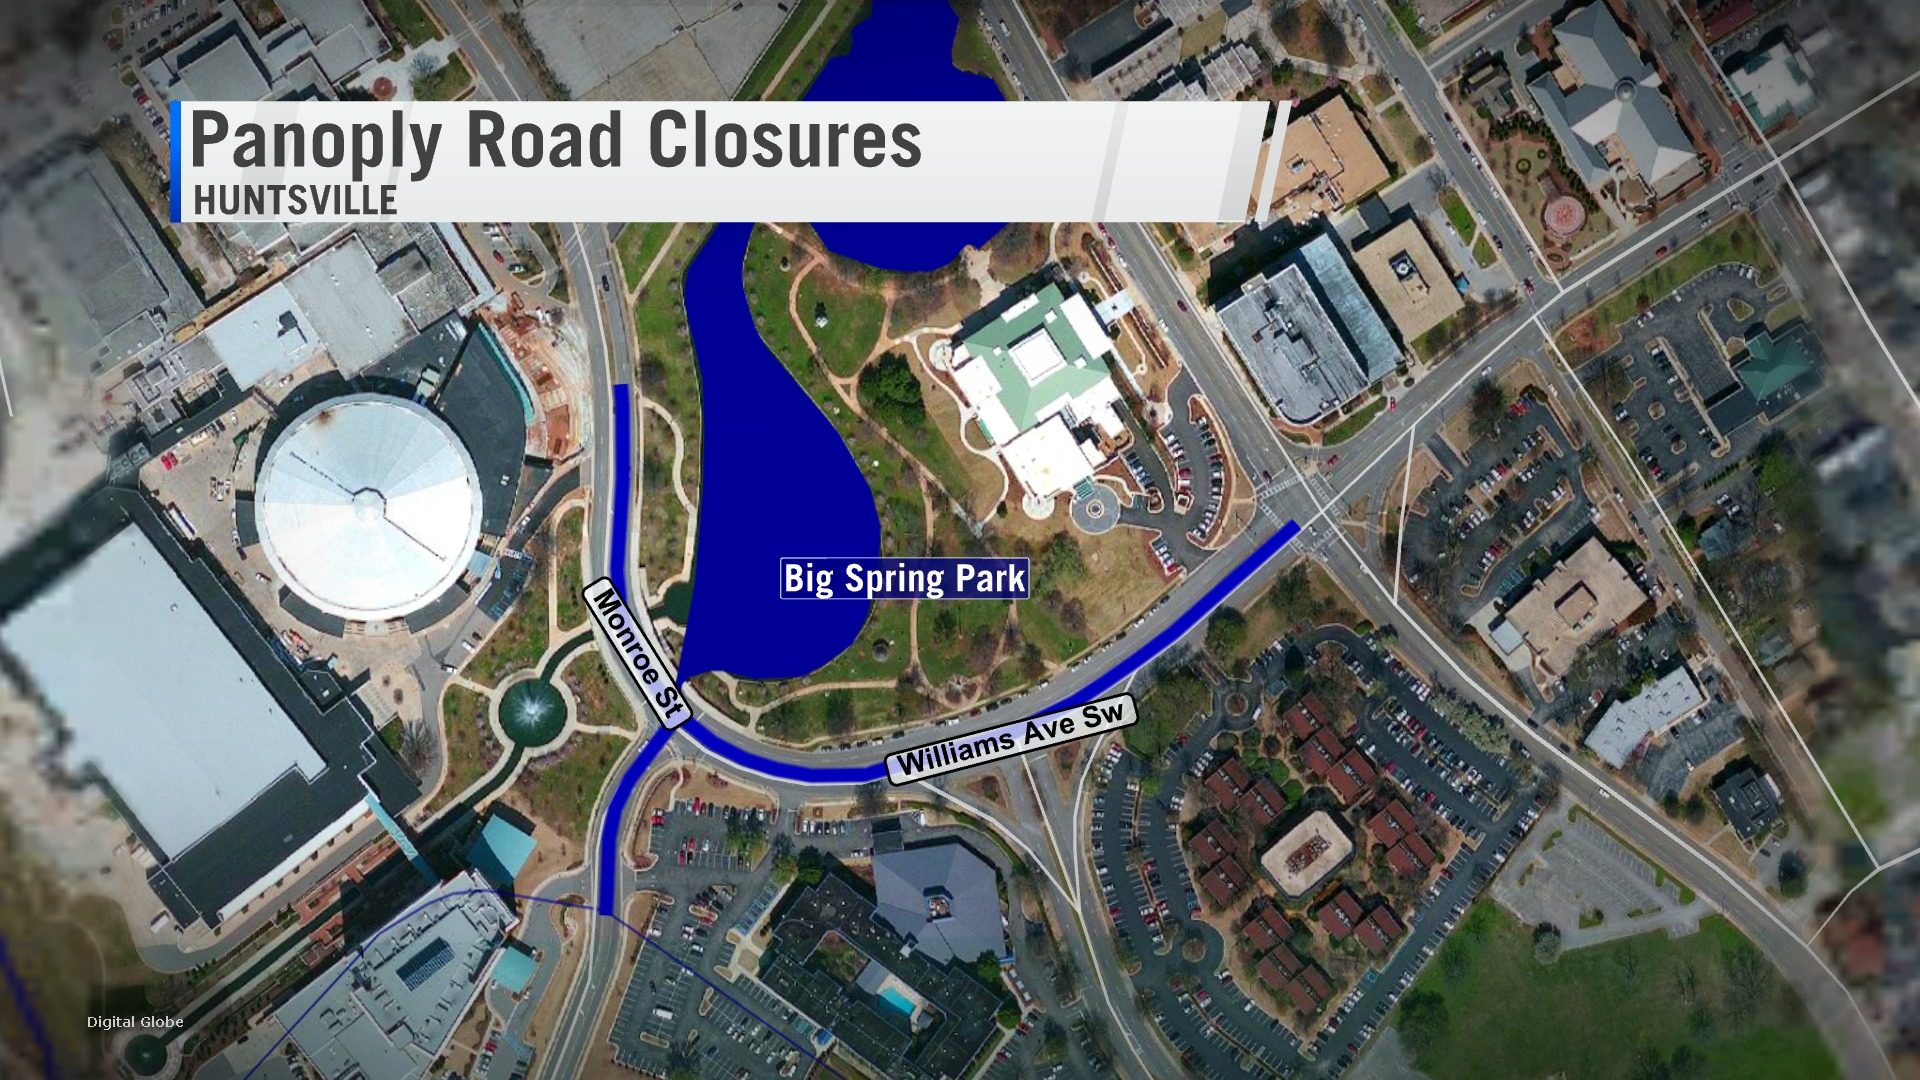 Panoply_Road_Closures